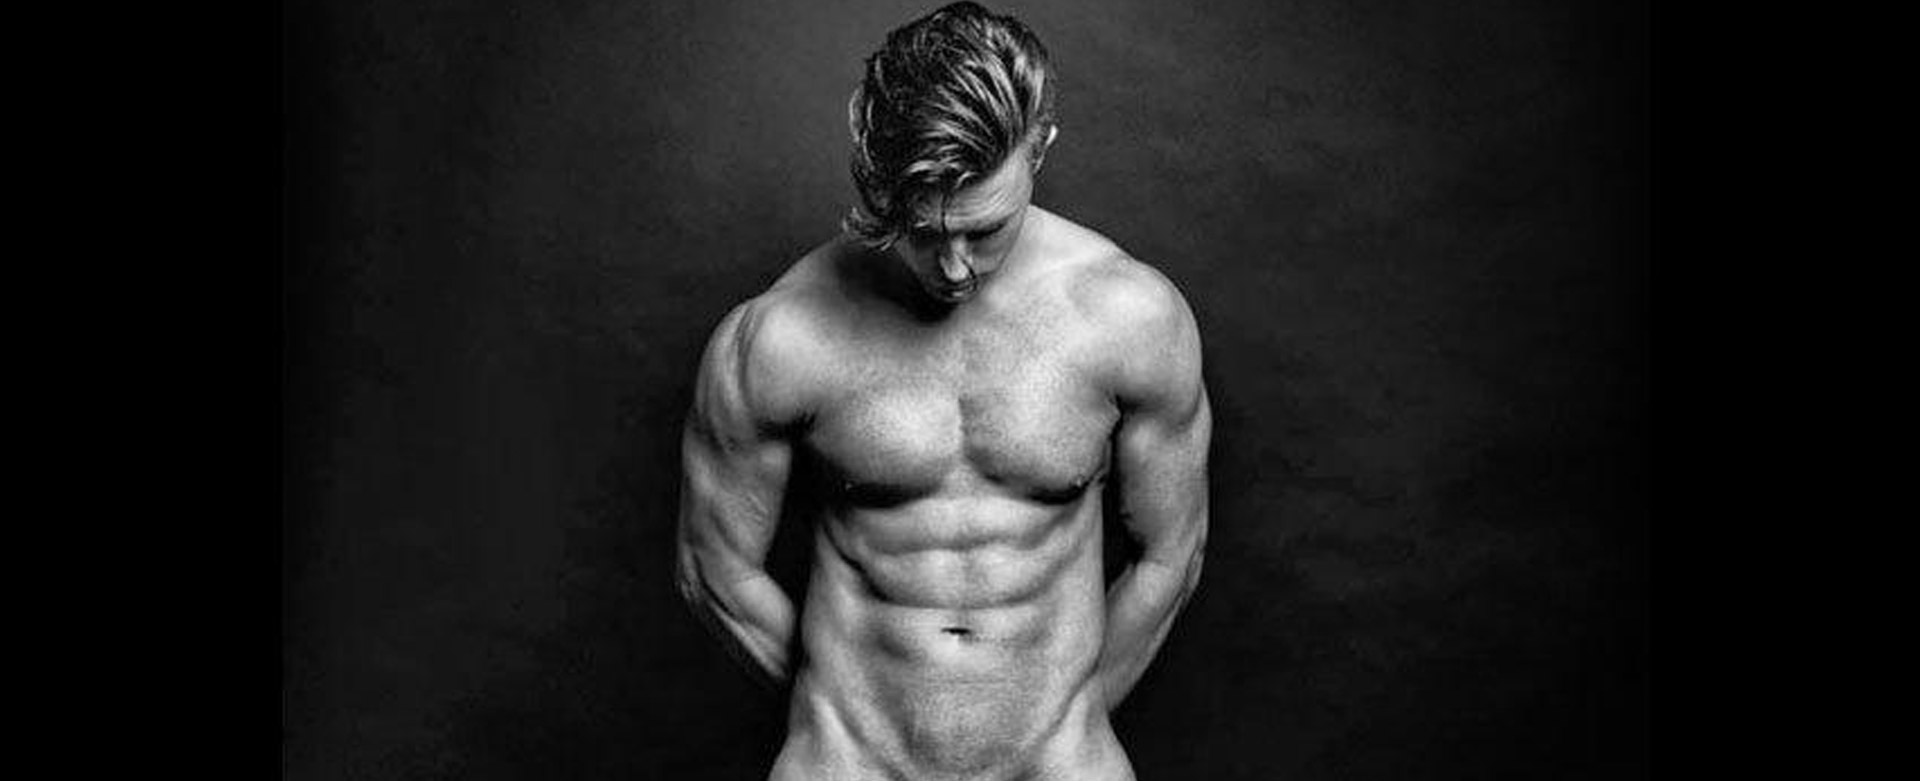 Naked upper body of man looking down